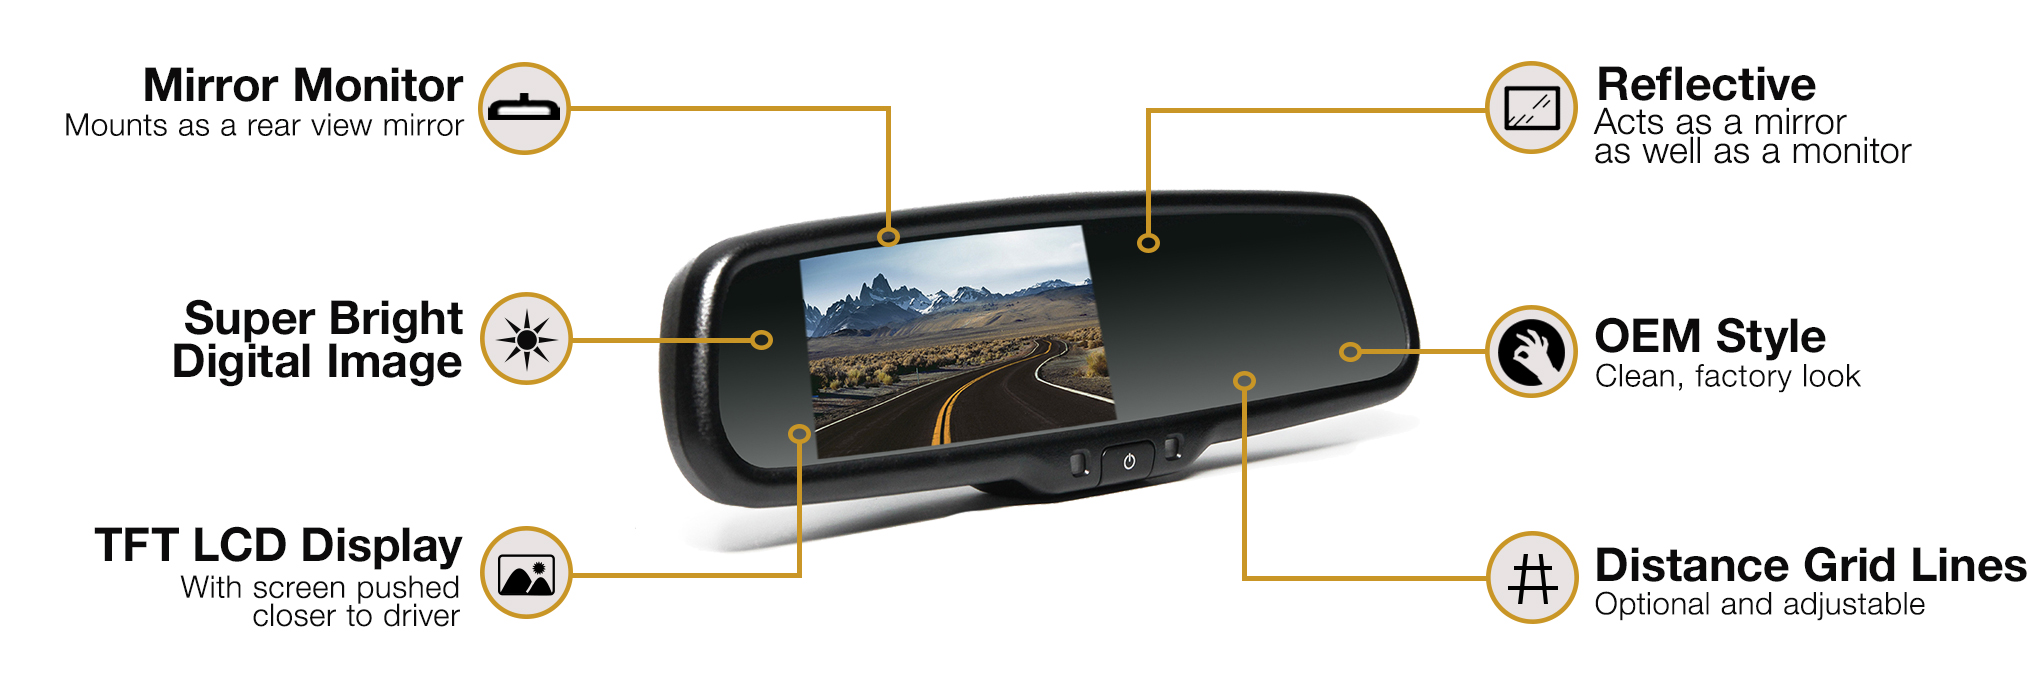 Rear View Safety RVS-770718 Backup Camera System With Replacement Mirror Monitor